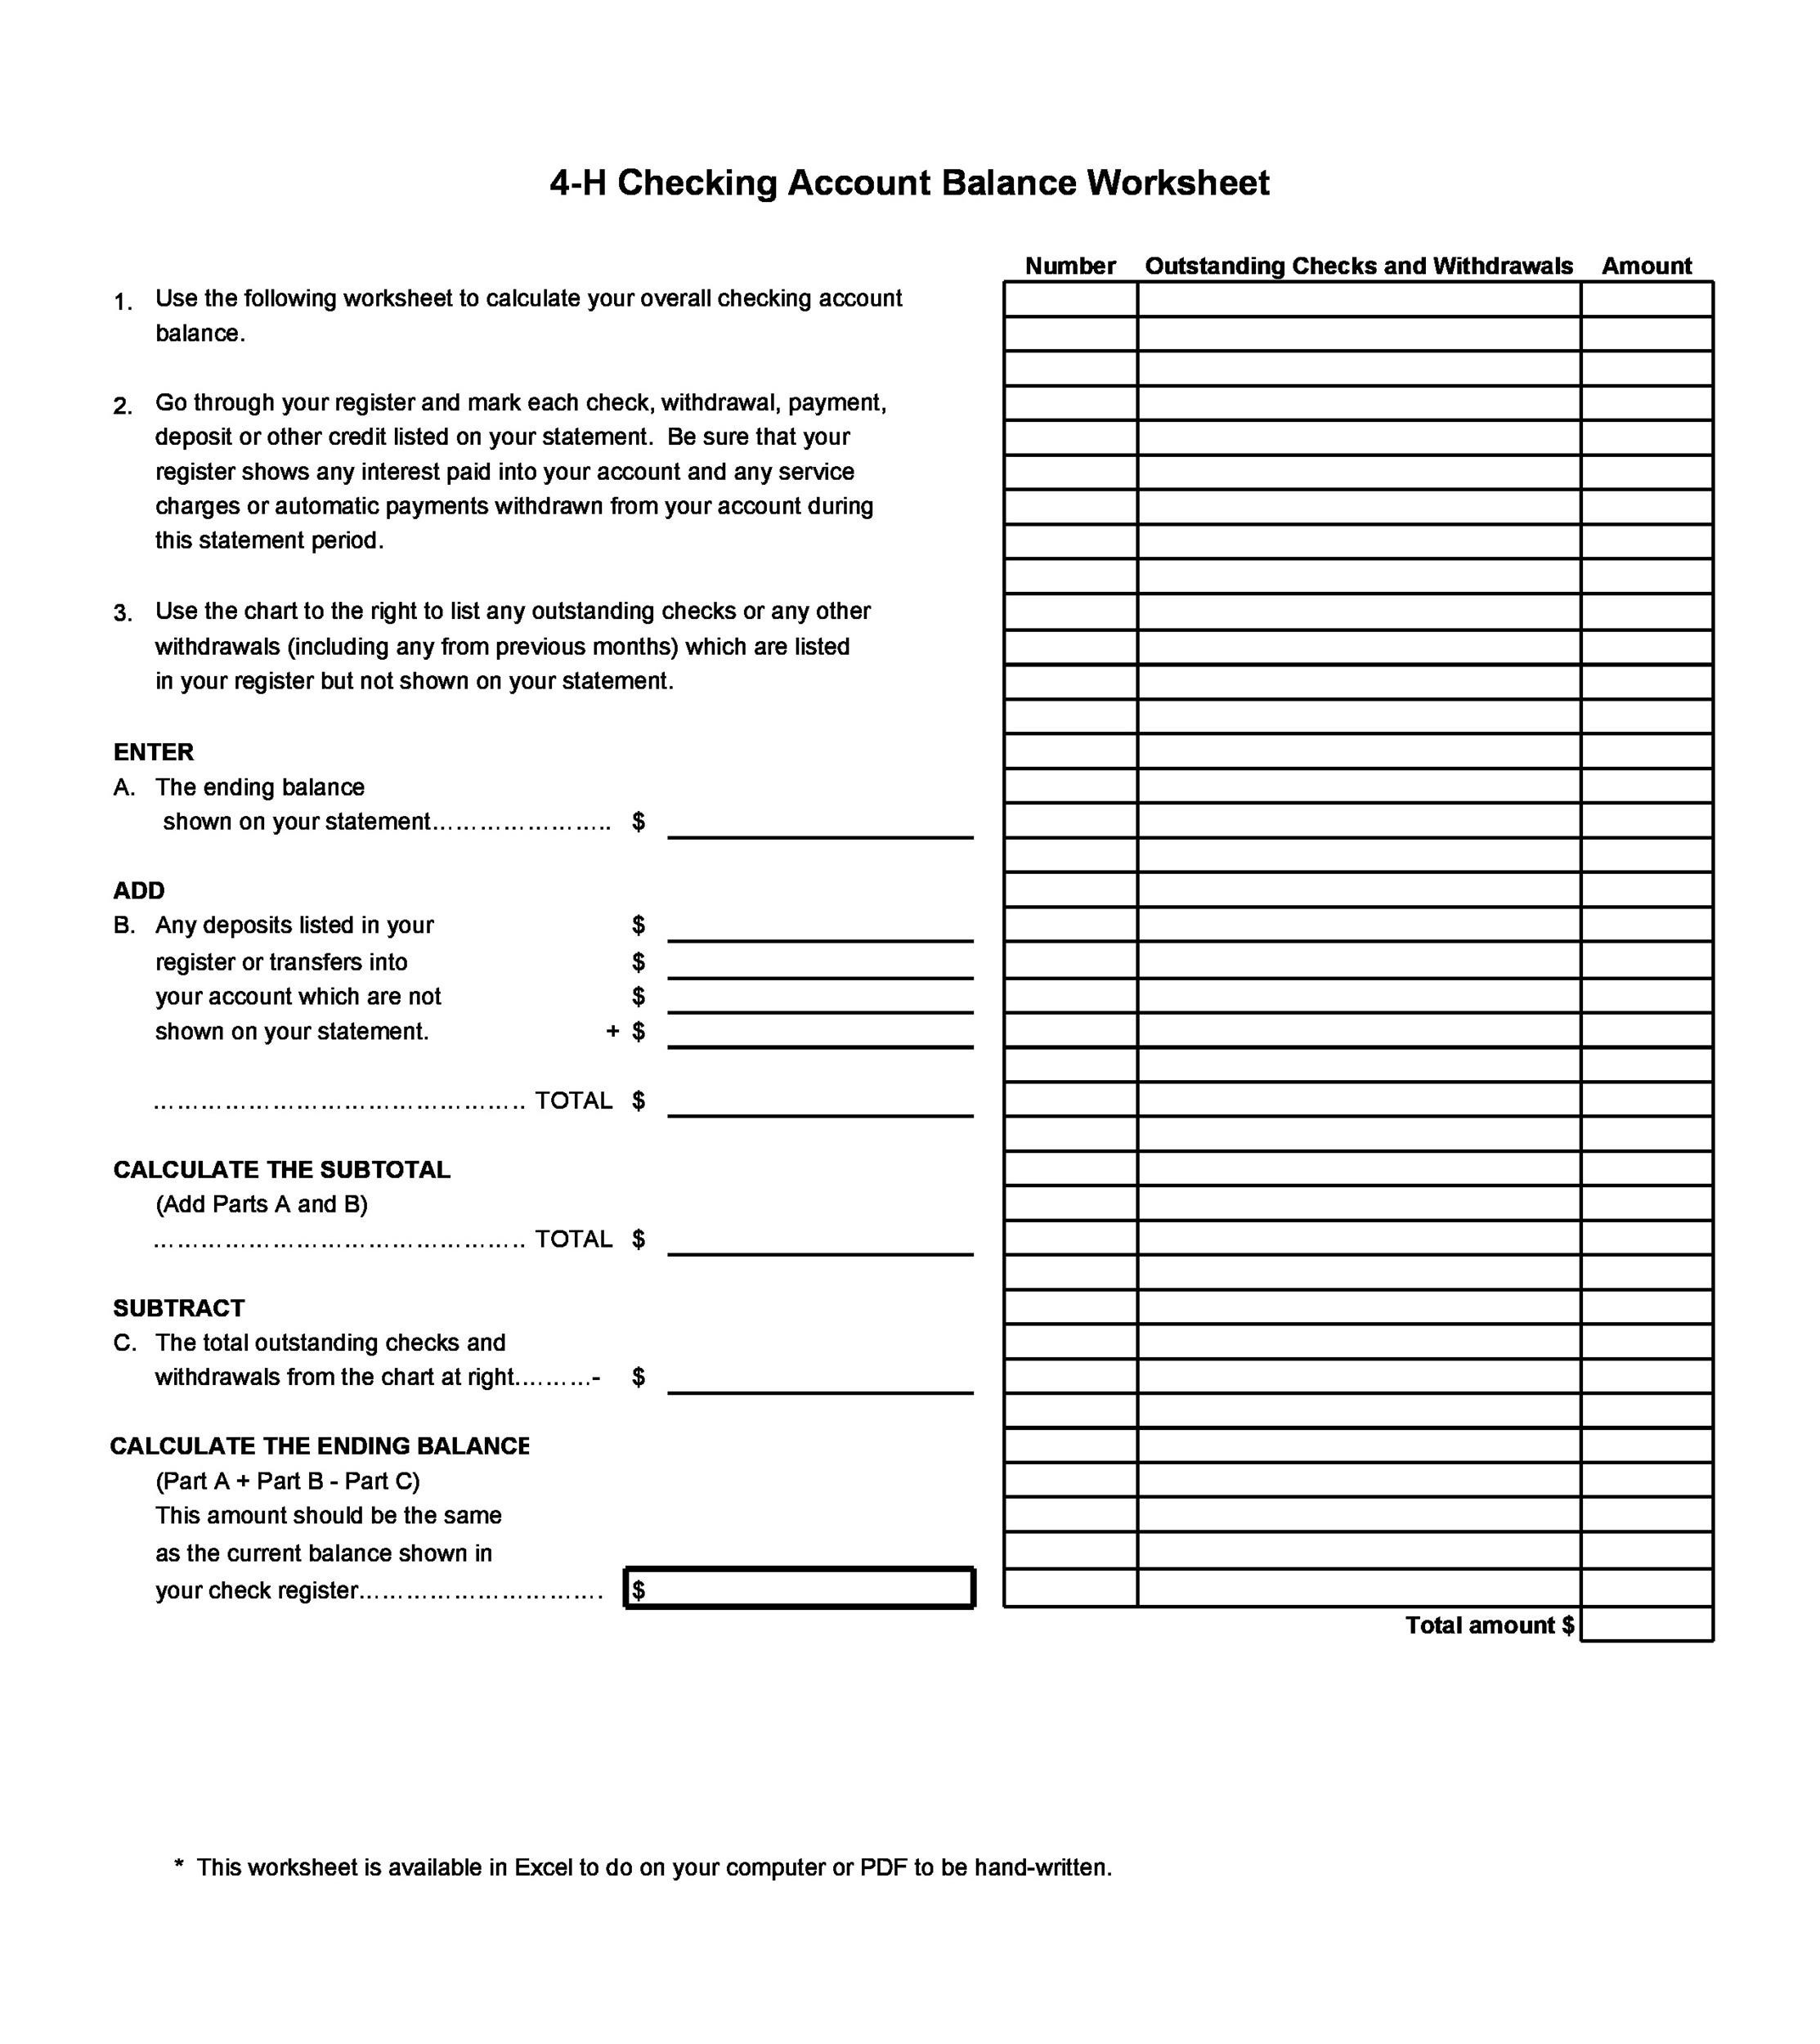 Balancing checkbook worksheet excel